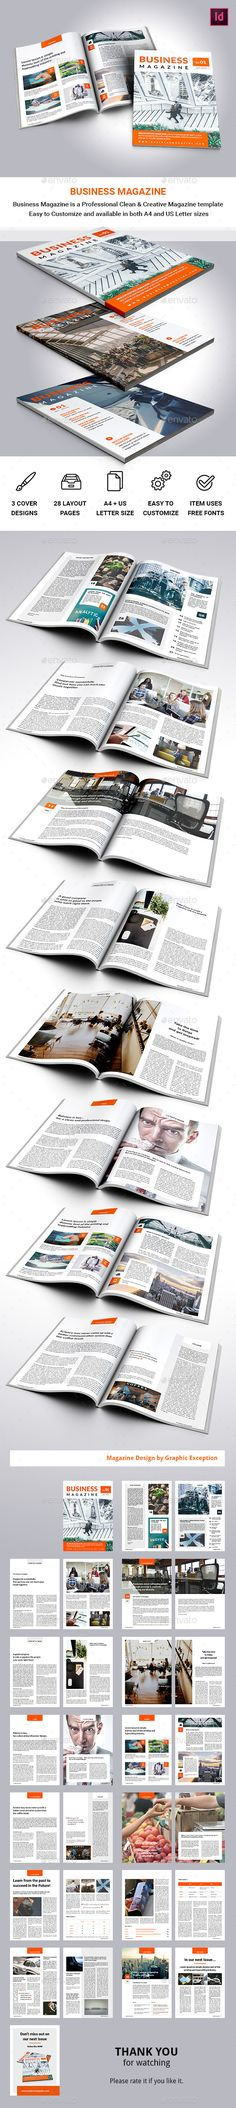 Business Magazine - Magazines Print Templates Download here : https://graphicriver.net/item/business-magazine/18927184?s_rank=107&ref=Al-fatih